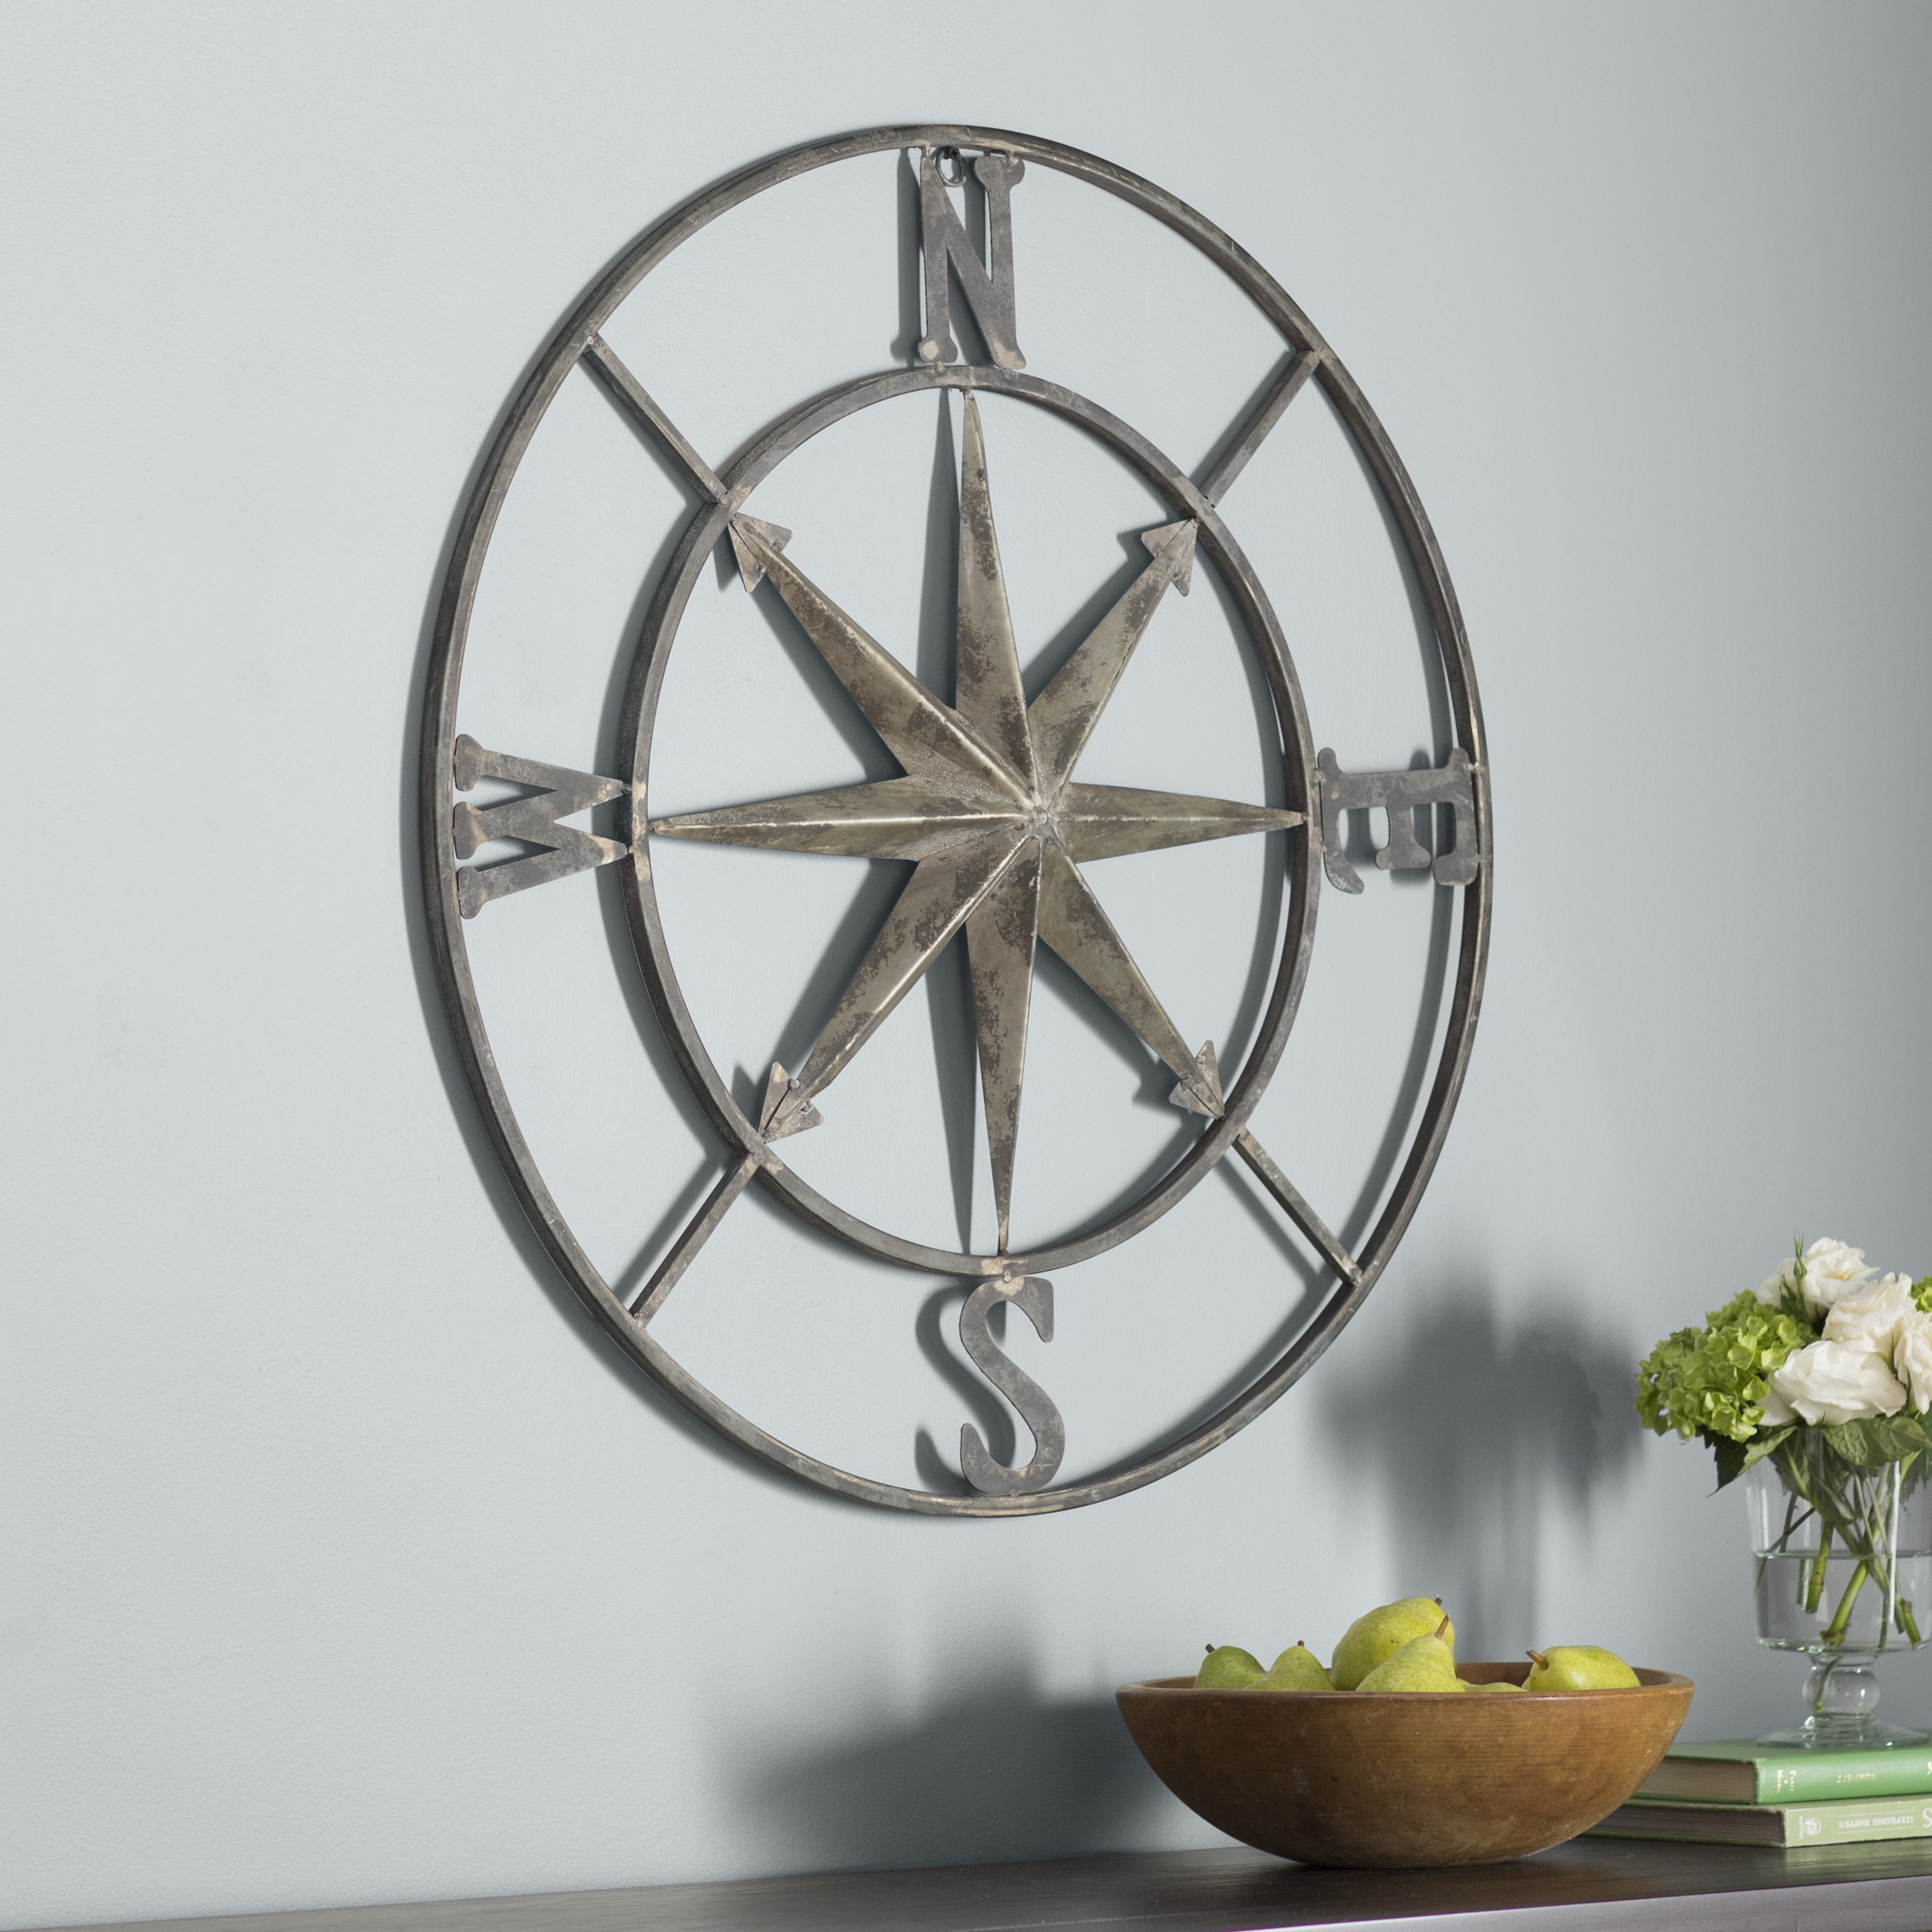 Compass Wall Decor | Wayfair inside Outdoor Metal Wall Compass (Image 14 of 30)